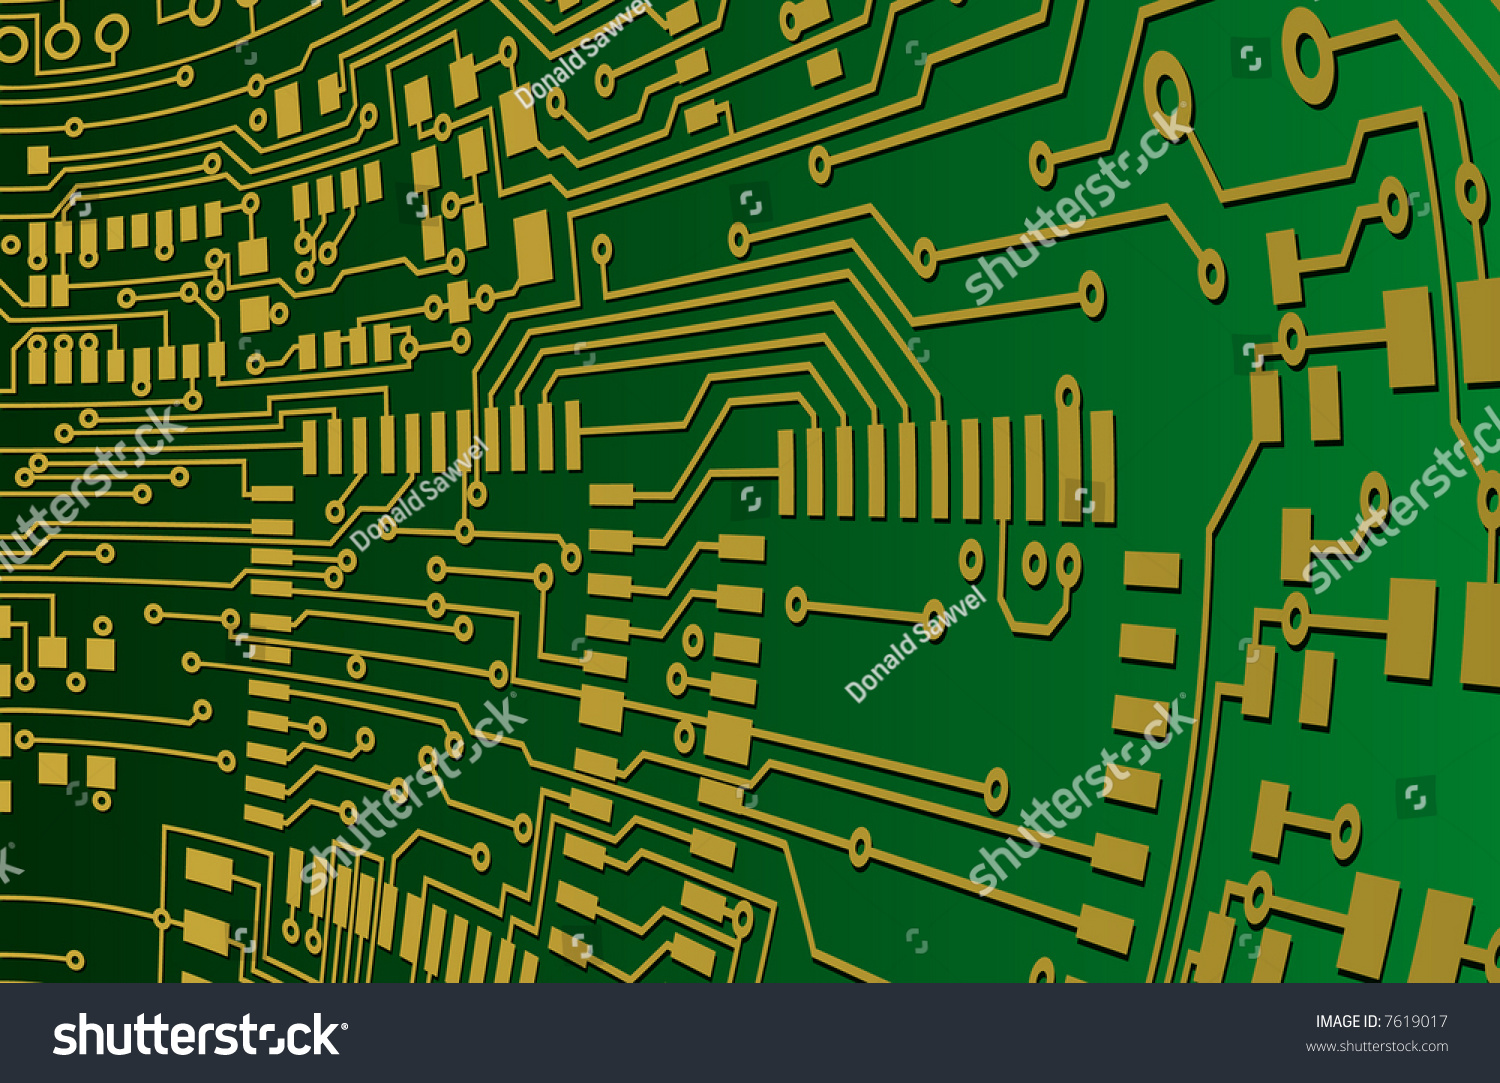 Green Gold Circuit Board Background Stock Vector Royalty Free Pcb Printed 13 Photos Image And